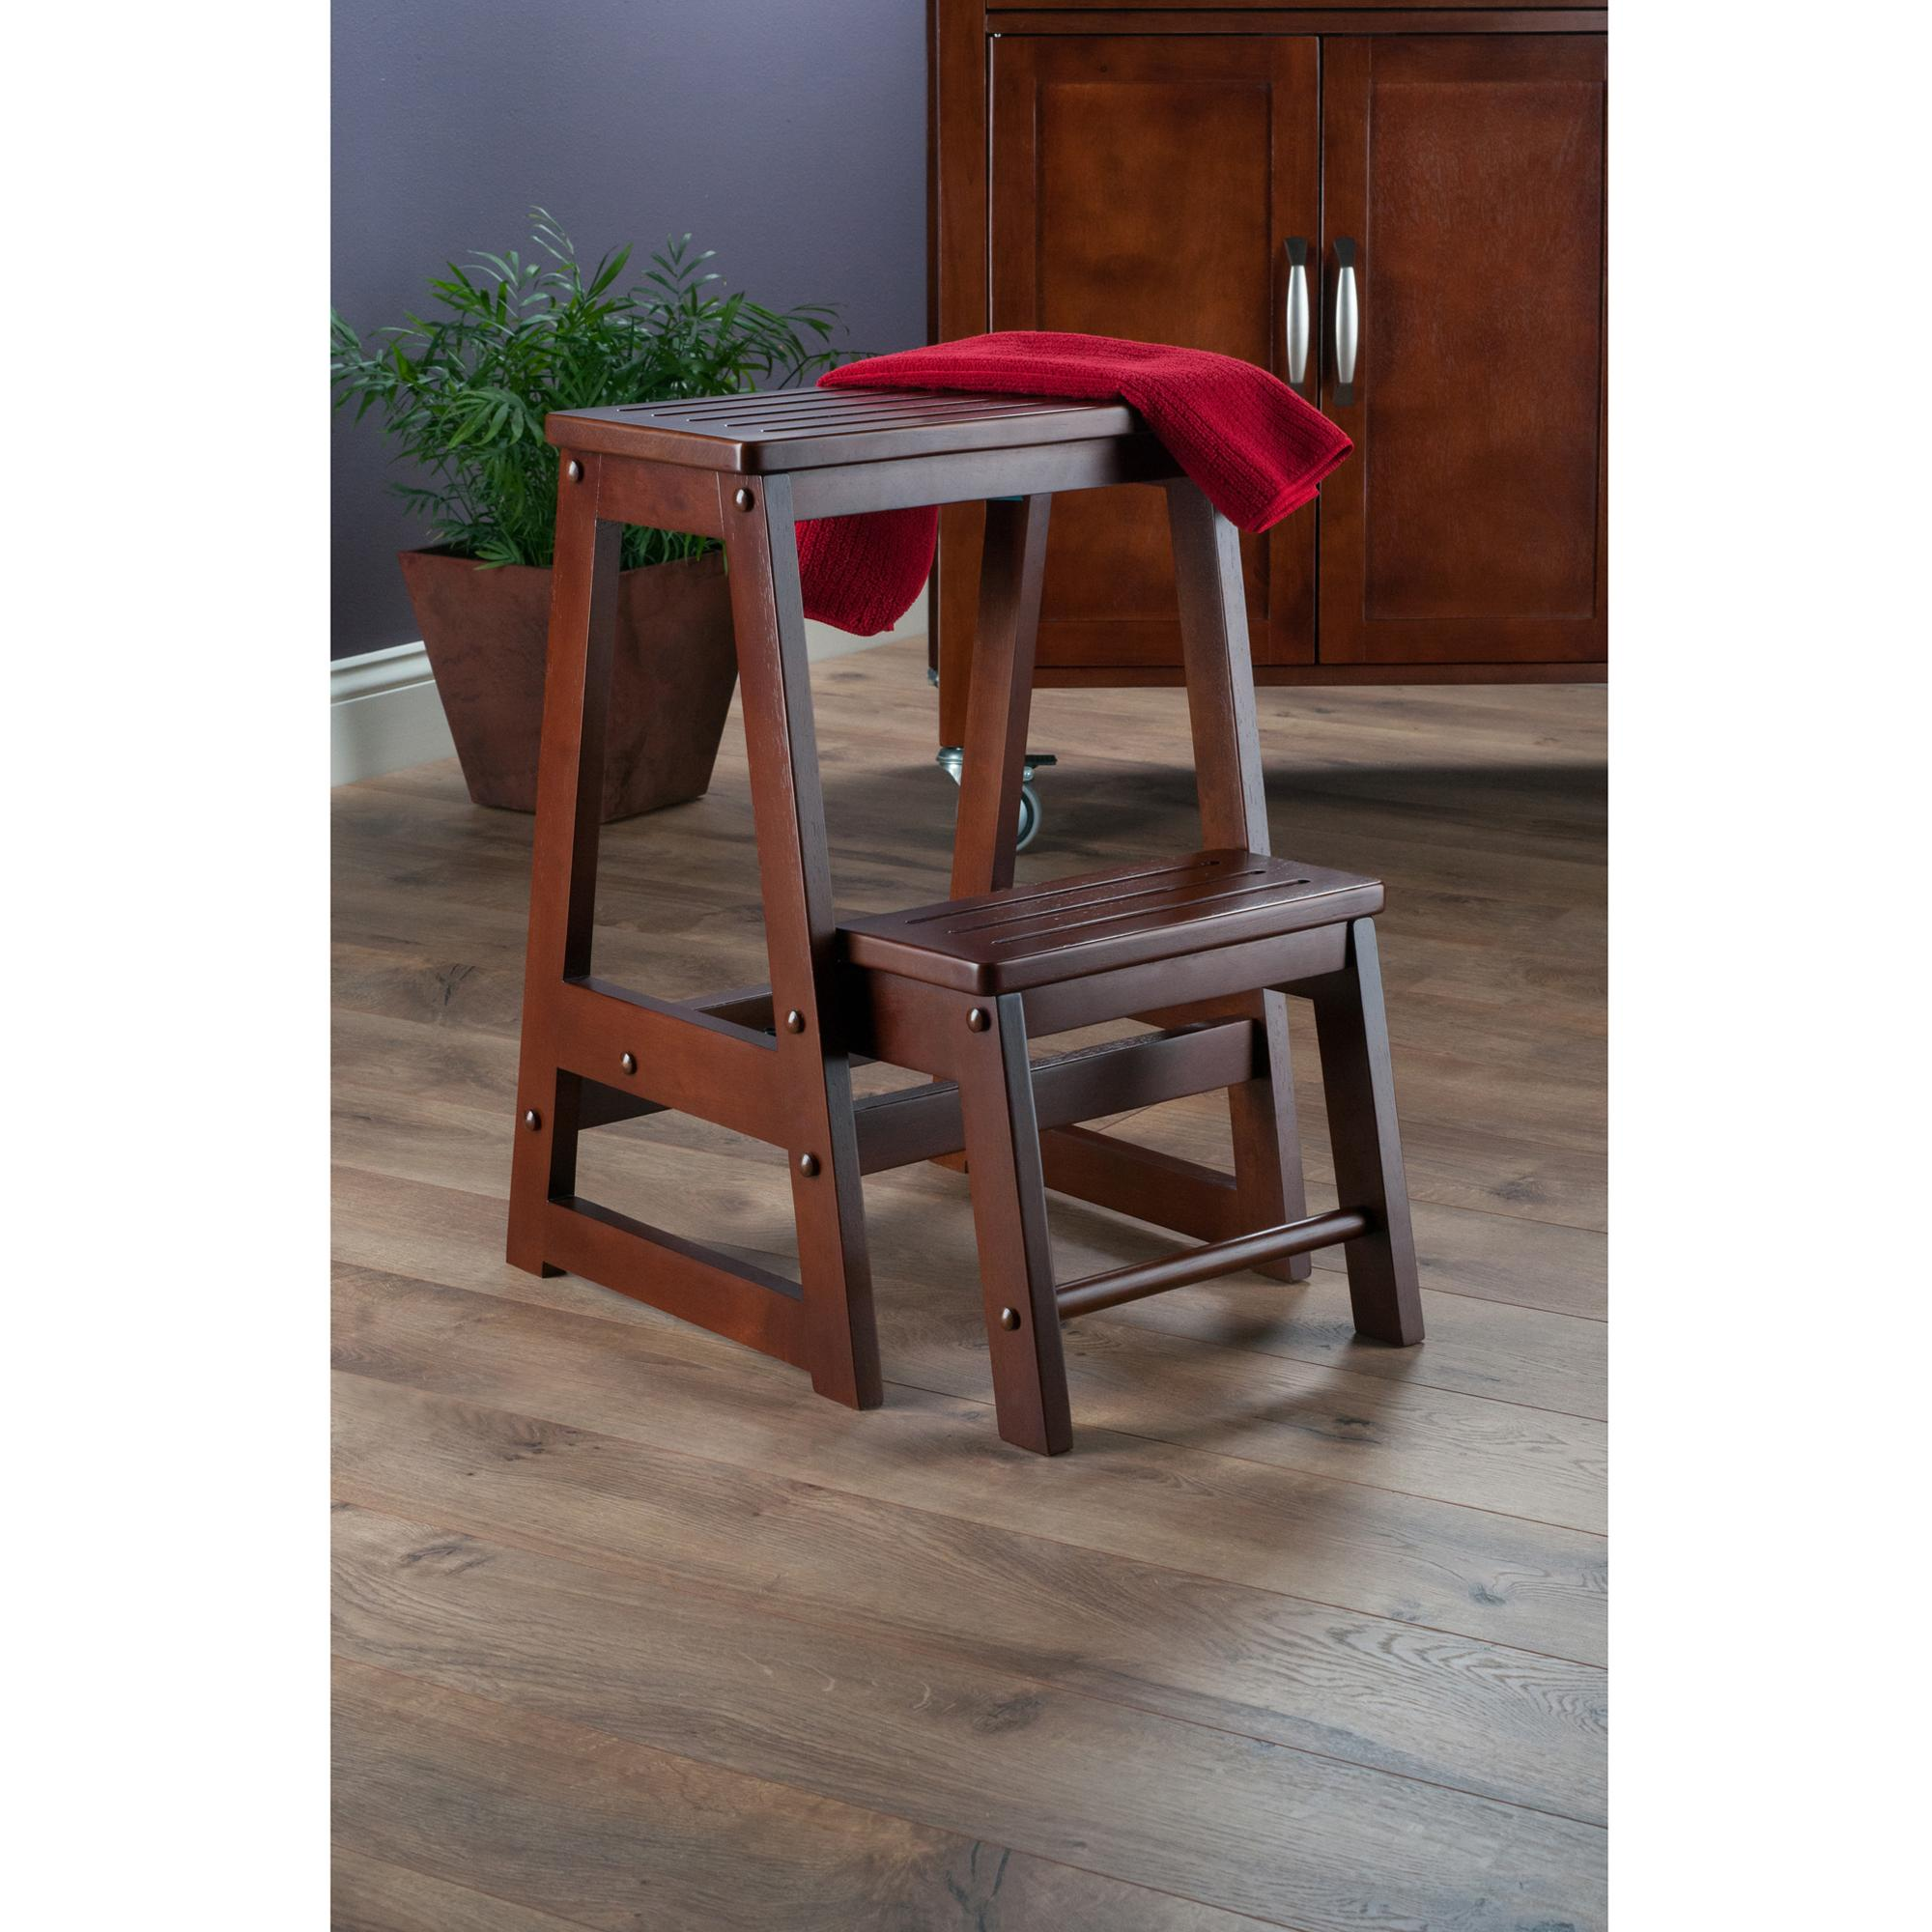 Winsome Wood Step Stool Antique Walnut Amazon Home & Kitchen